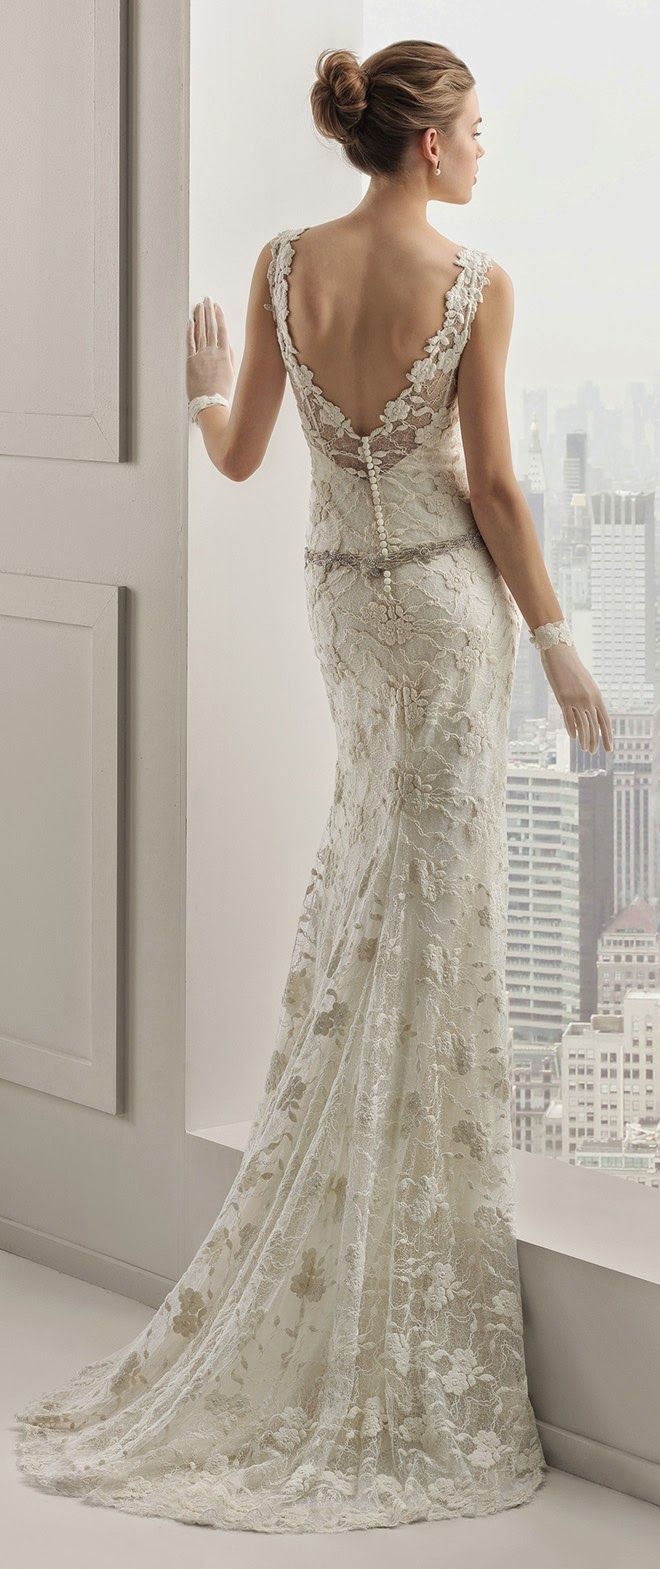 If you are a frequent here at Belle The Magazine – and I hope you are! – you know Thursdays are fashion days. Last Tuesday I brought you a glimpse of the newest collection by Spanish bridal fashion powerhouse, Rosa Clara, and today I'm sharing with you Part 2 of their latest amazing dresses. From read more...